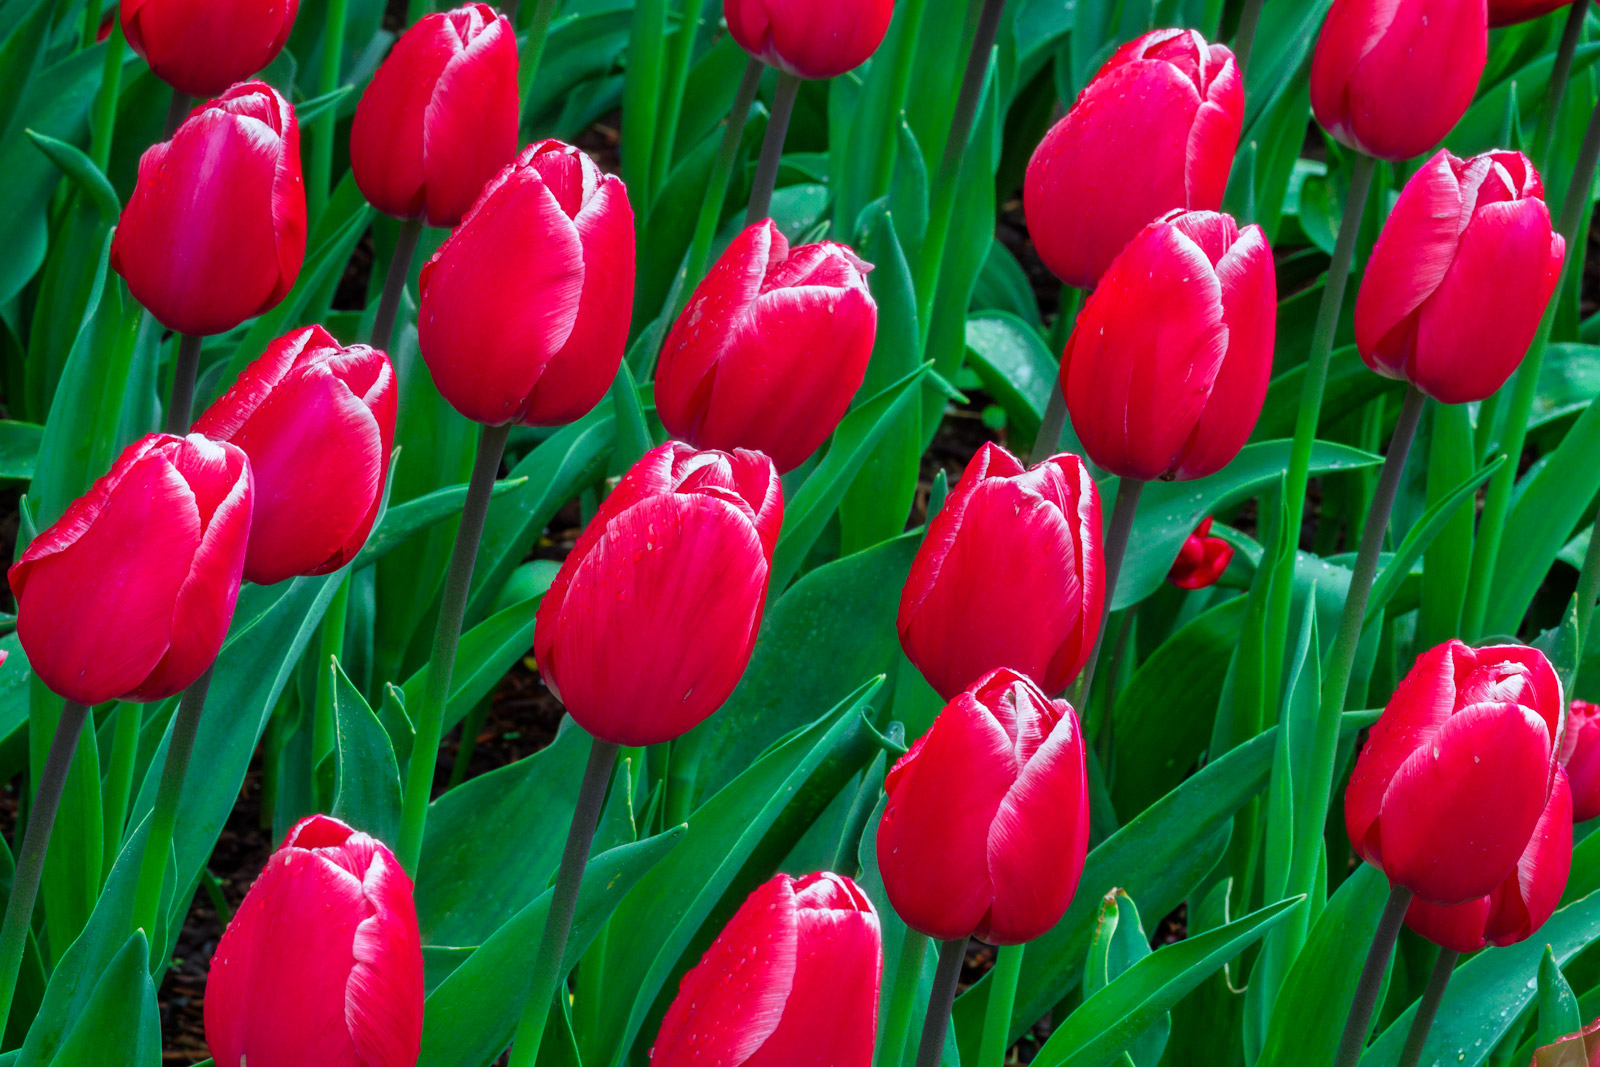 A Limited Edition, Fine Art photograph of a closeup of a group of red tulips and green leaves in the spring in the Skagit Valley...